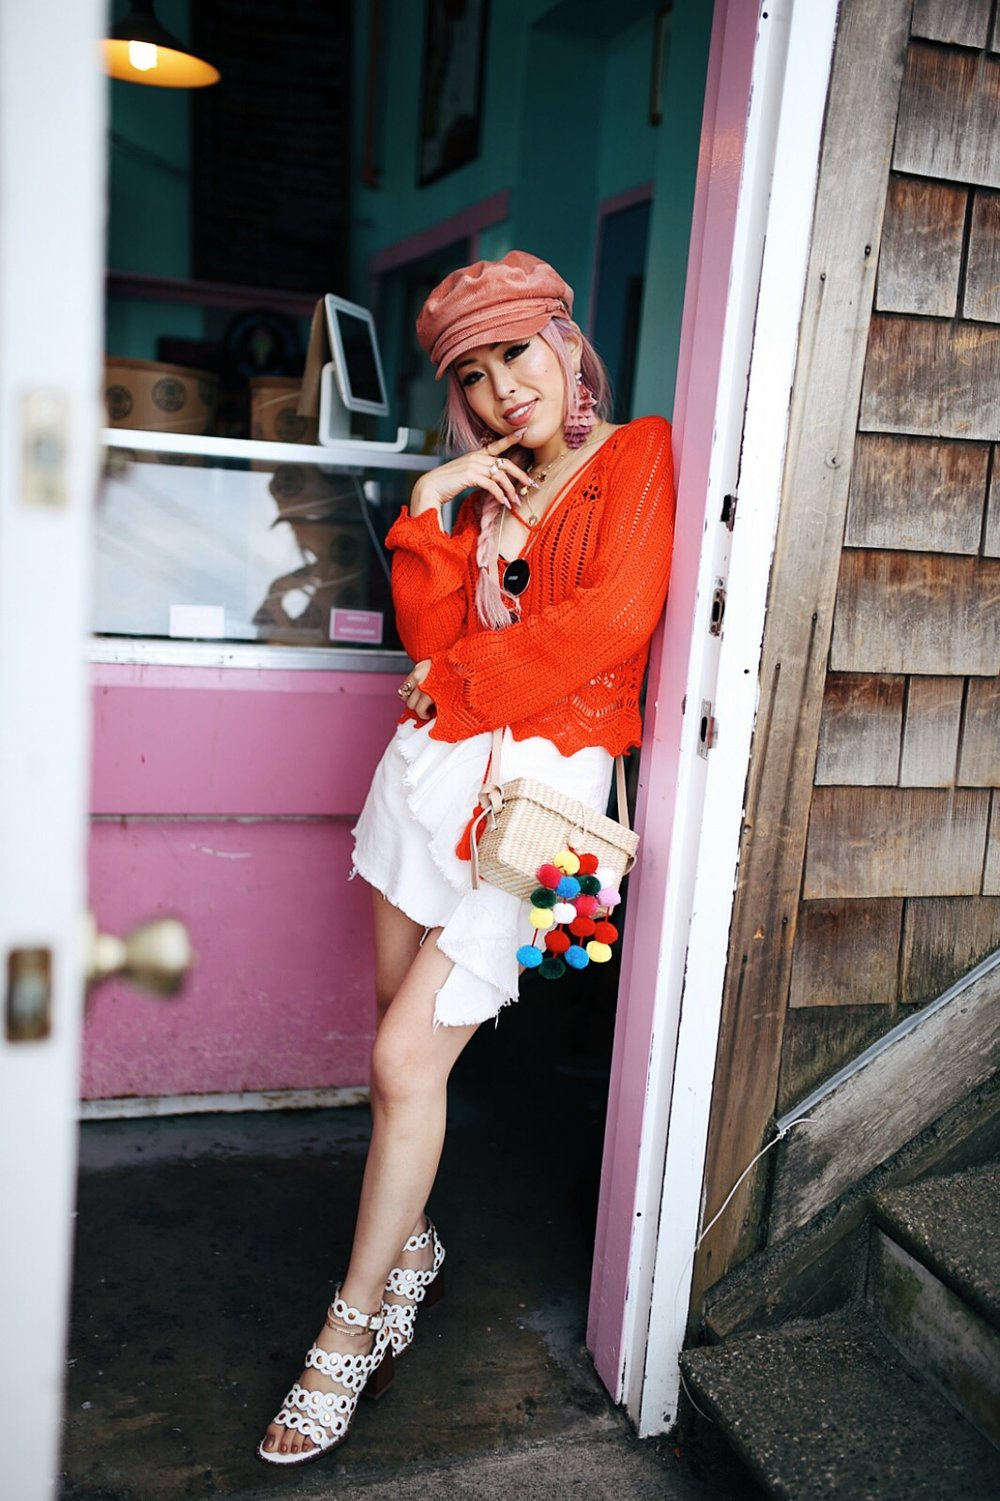 River Island Pink cord baker boy hat-Pink ombre tassel drop earrings-Red crotchet knit tassel crop top-White frill denim skort-White scallop block heel sandals-Shein Straw box bag with pom pom-Aikas Love Closet-Seattle Style Fashion Blogger-Japanese-Pink Hair-Side fishtail braid-summer style-smile 10